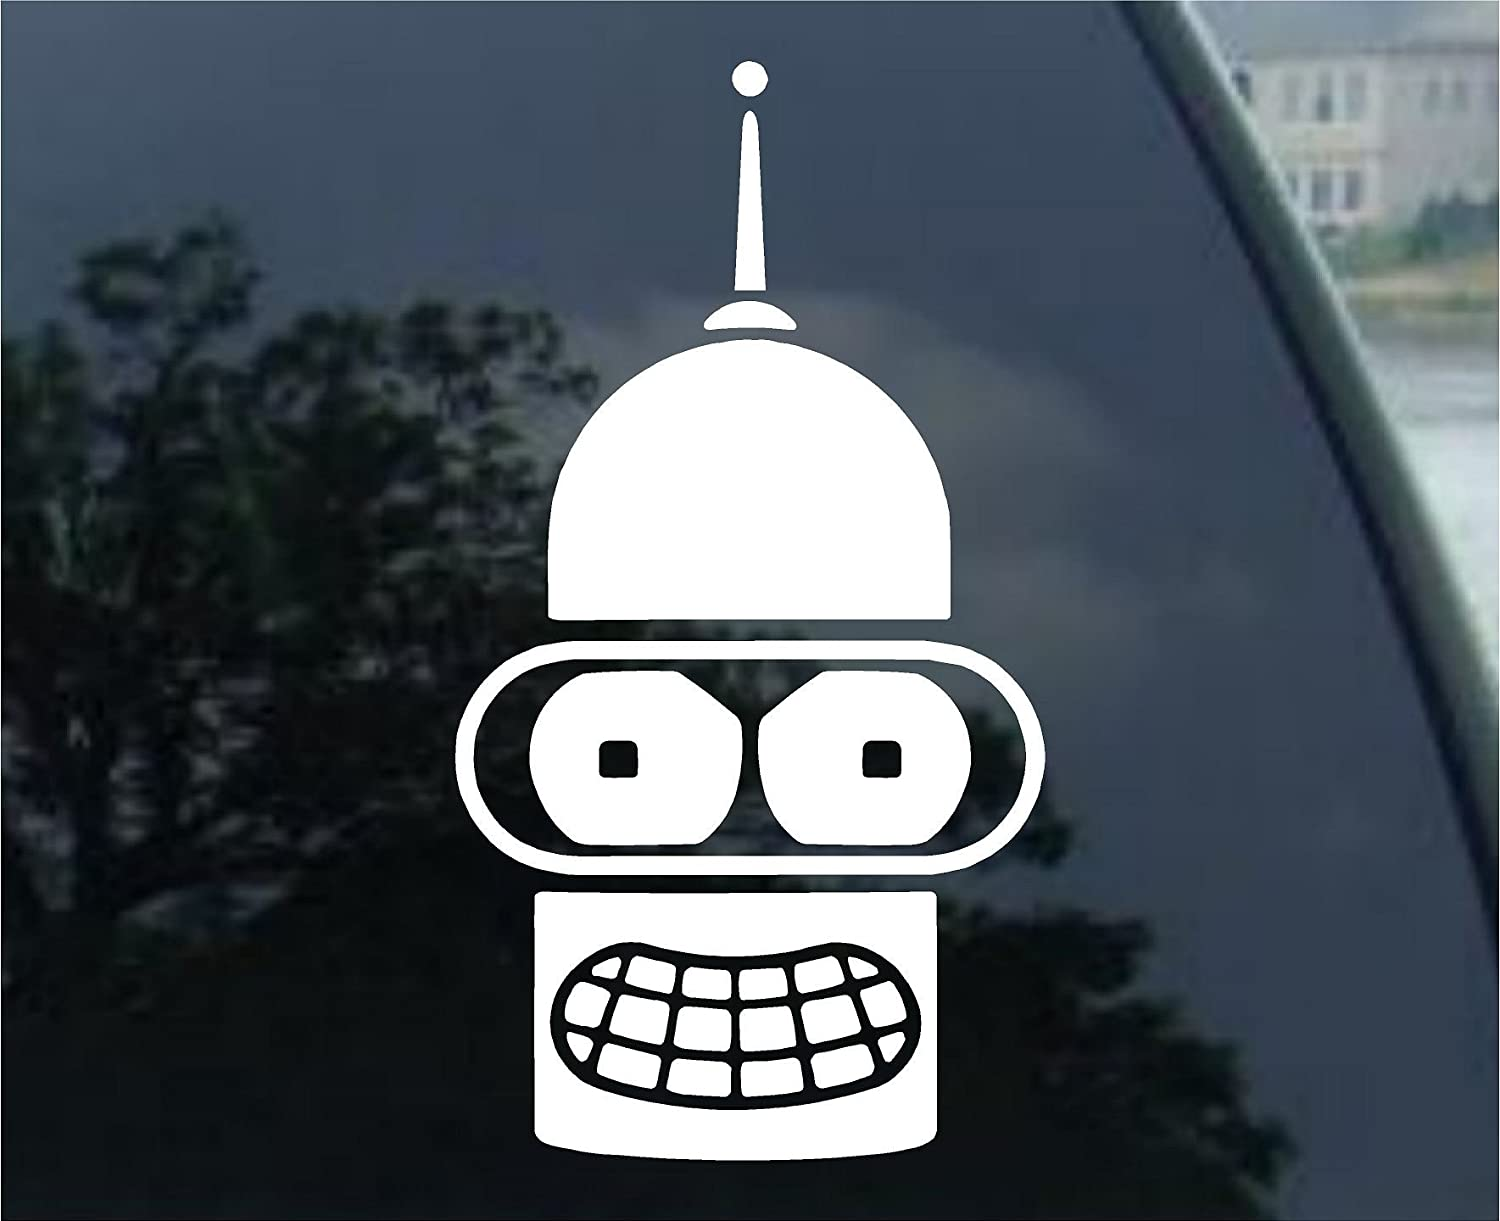 2019公式店舗 Futurama Bender White Sticker Decal Bender Futurama Wall Decal Laptop Notebook Die-cut White Sticker Decal B00CI920Q8, サイバーベイ:b041c6cb --- a0267596.xsph.ru